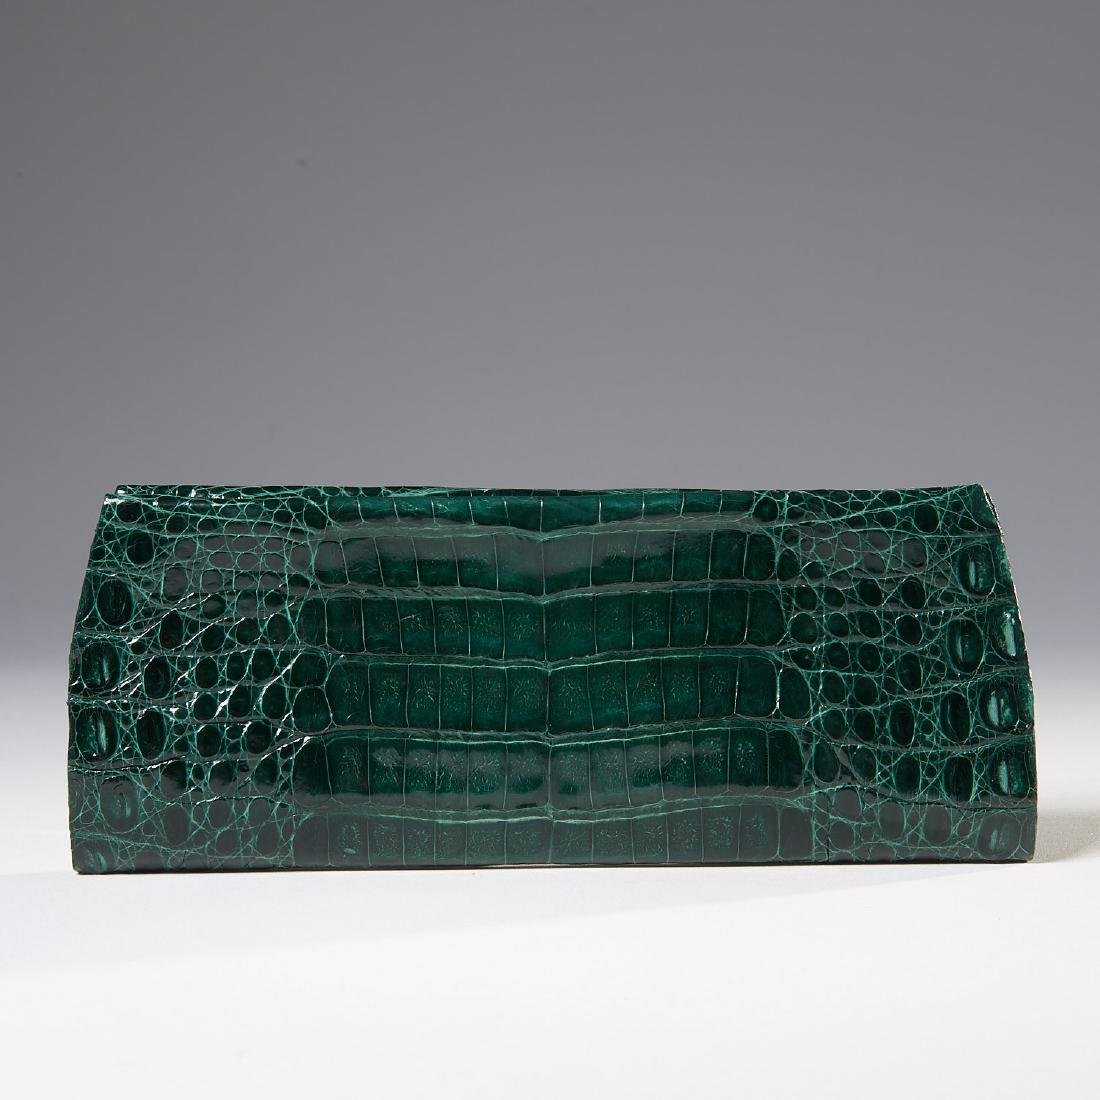 Gambelle green glazed crocodile clutch handbag